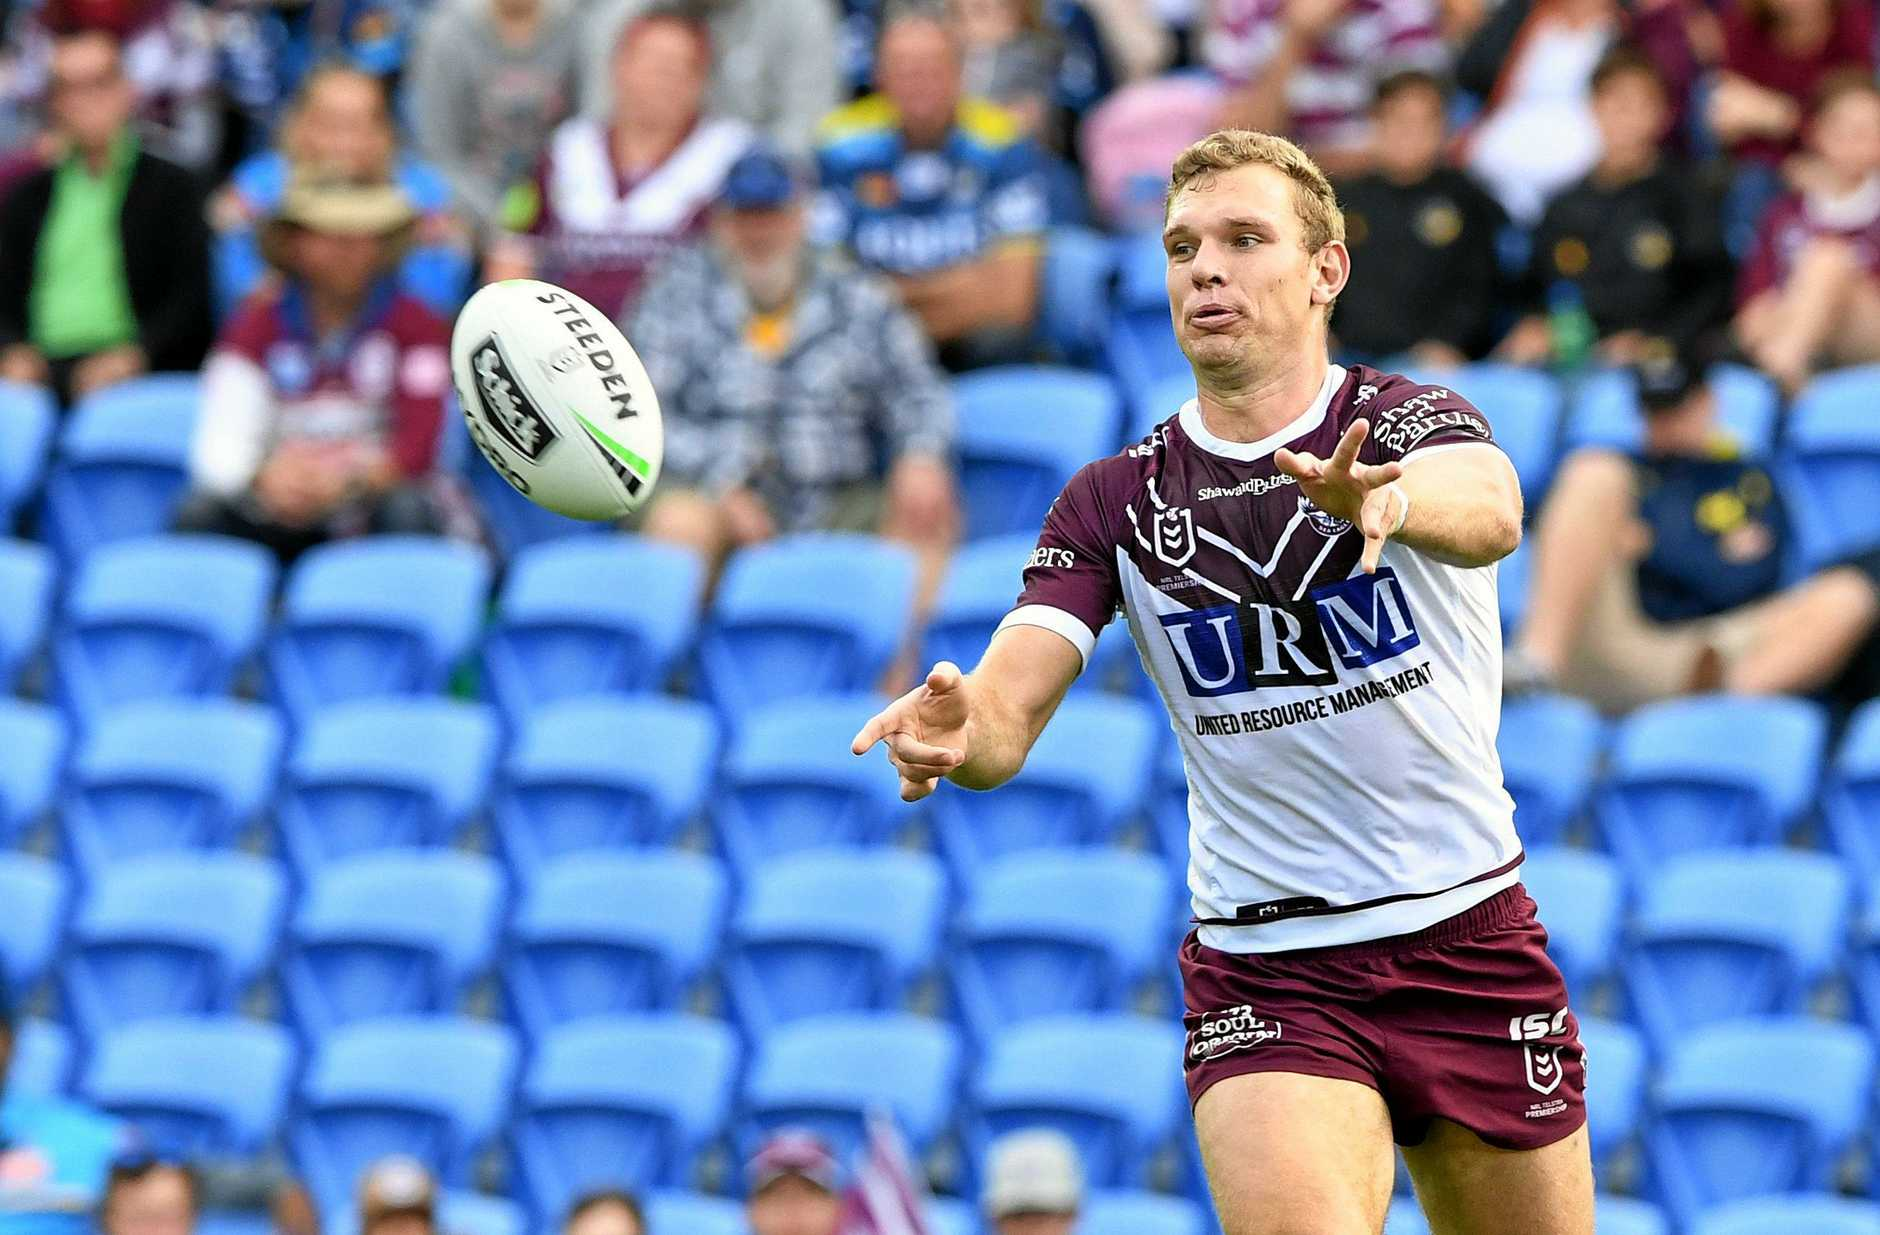 Tom Trbojevic of the Sea Eagles  during the Round 15 NRL match between the Gold Coast Titans and the Manly Sea Eagles at CBus Super Stadium on the Gold Coast, Saturday, June 29, 2019. (AAP Image/Dave Hunt) NO ARCHIVING, EDITORIAL USE ONLY